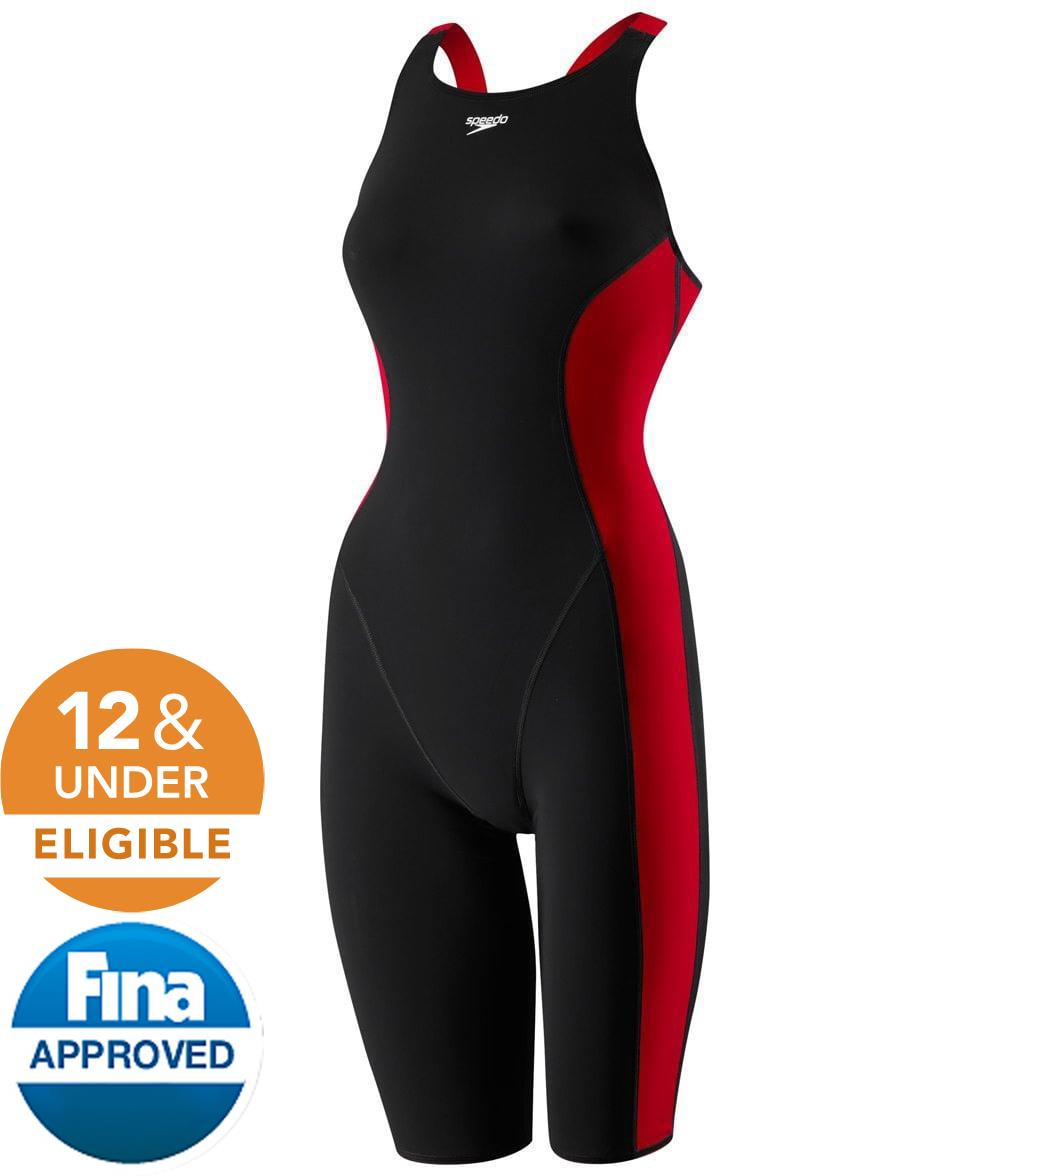 3919517cff8 Speedo Powerplus Youth Kneeskin Tech Suit Swimsuit at SwimOutlet.com - Free  Shipping